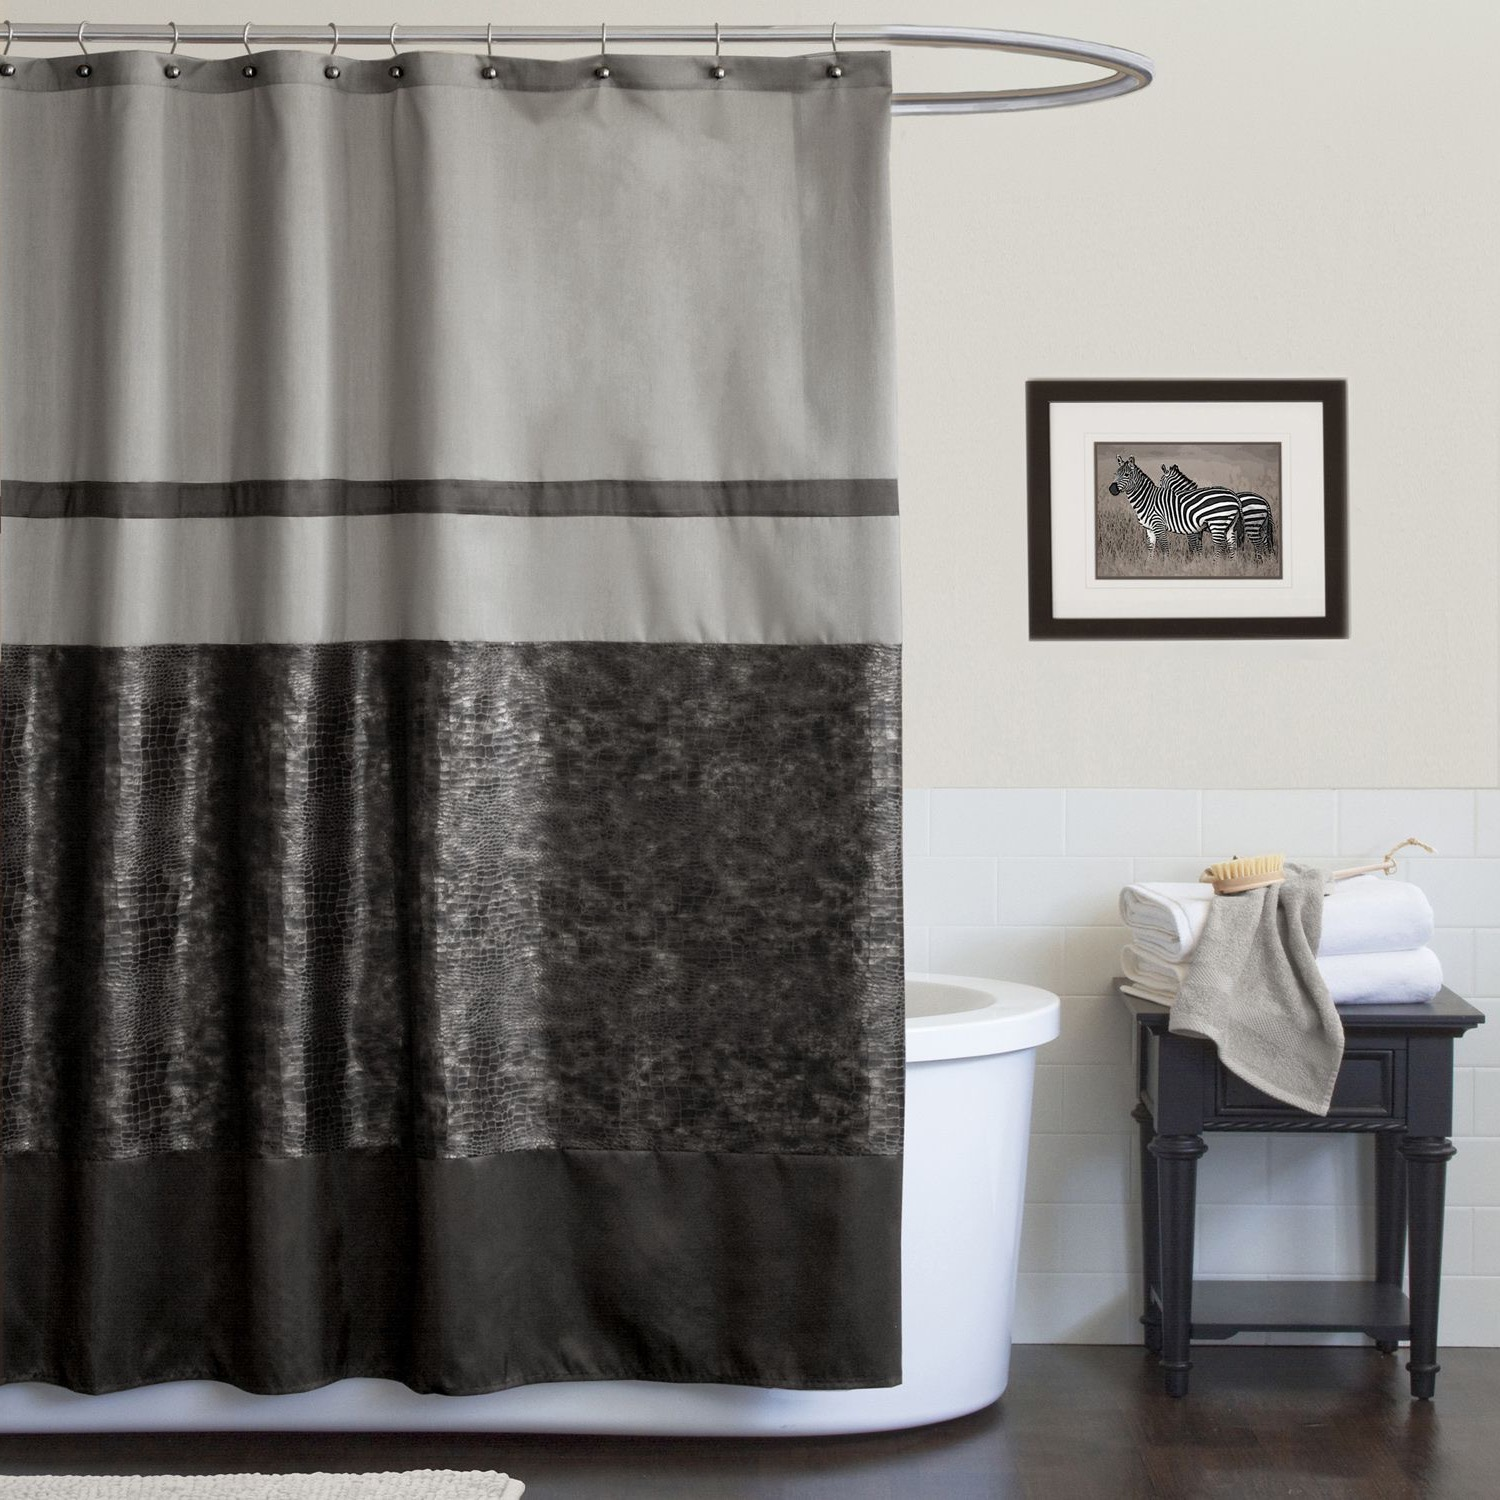 hooks decor image curtains to modern of hot wash that curtain easy shower home